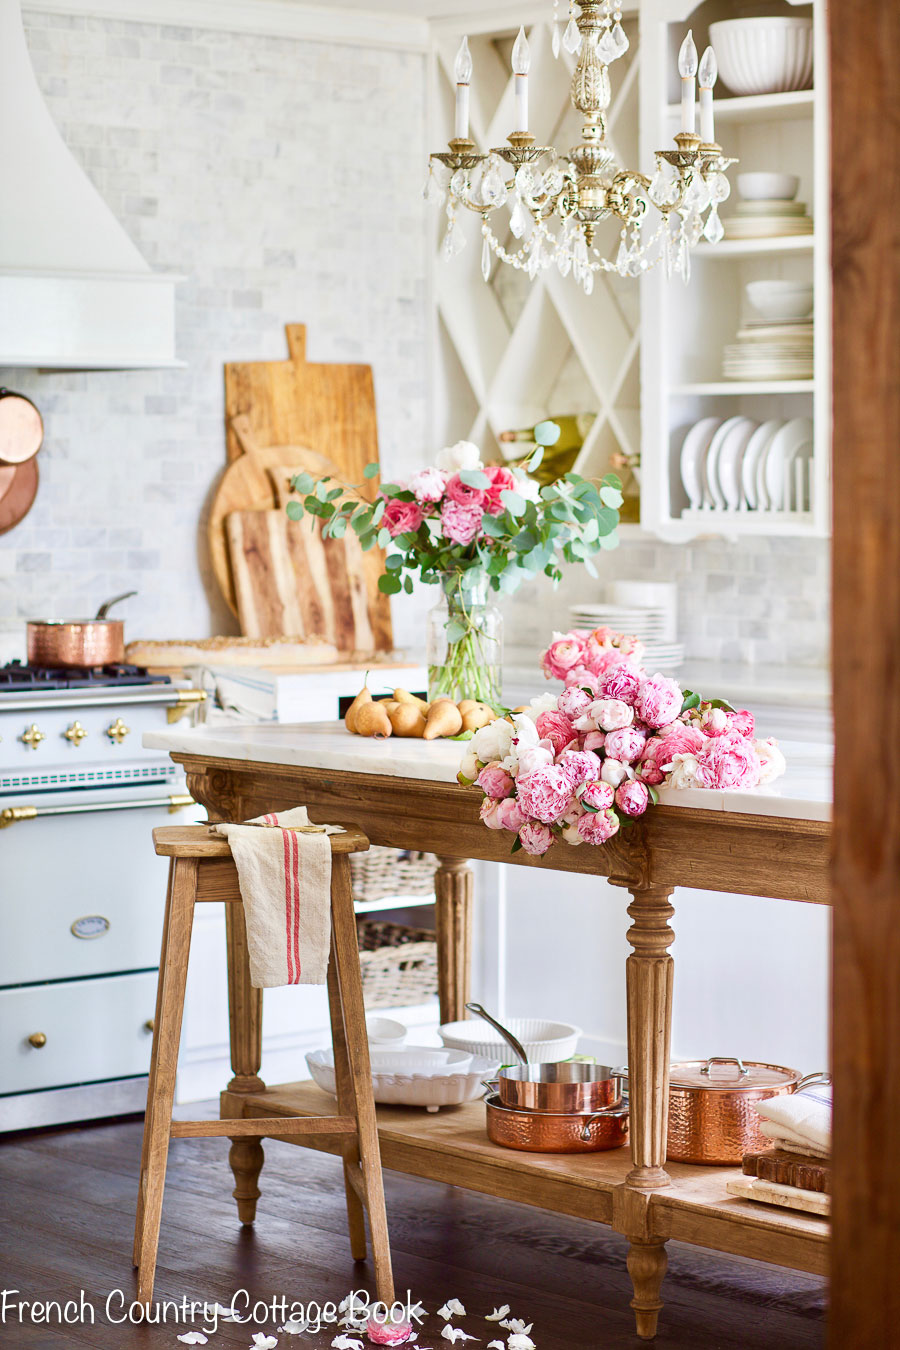 French Country Kitchen | French Country Cottage